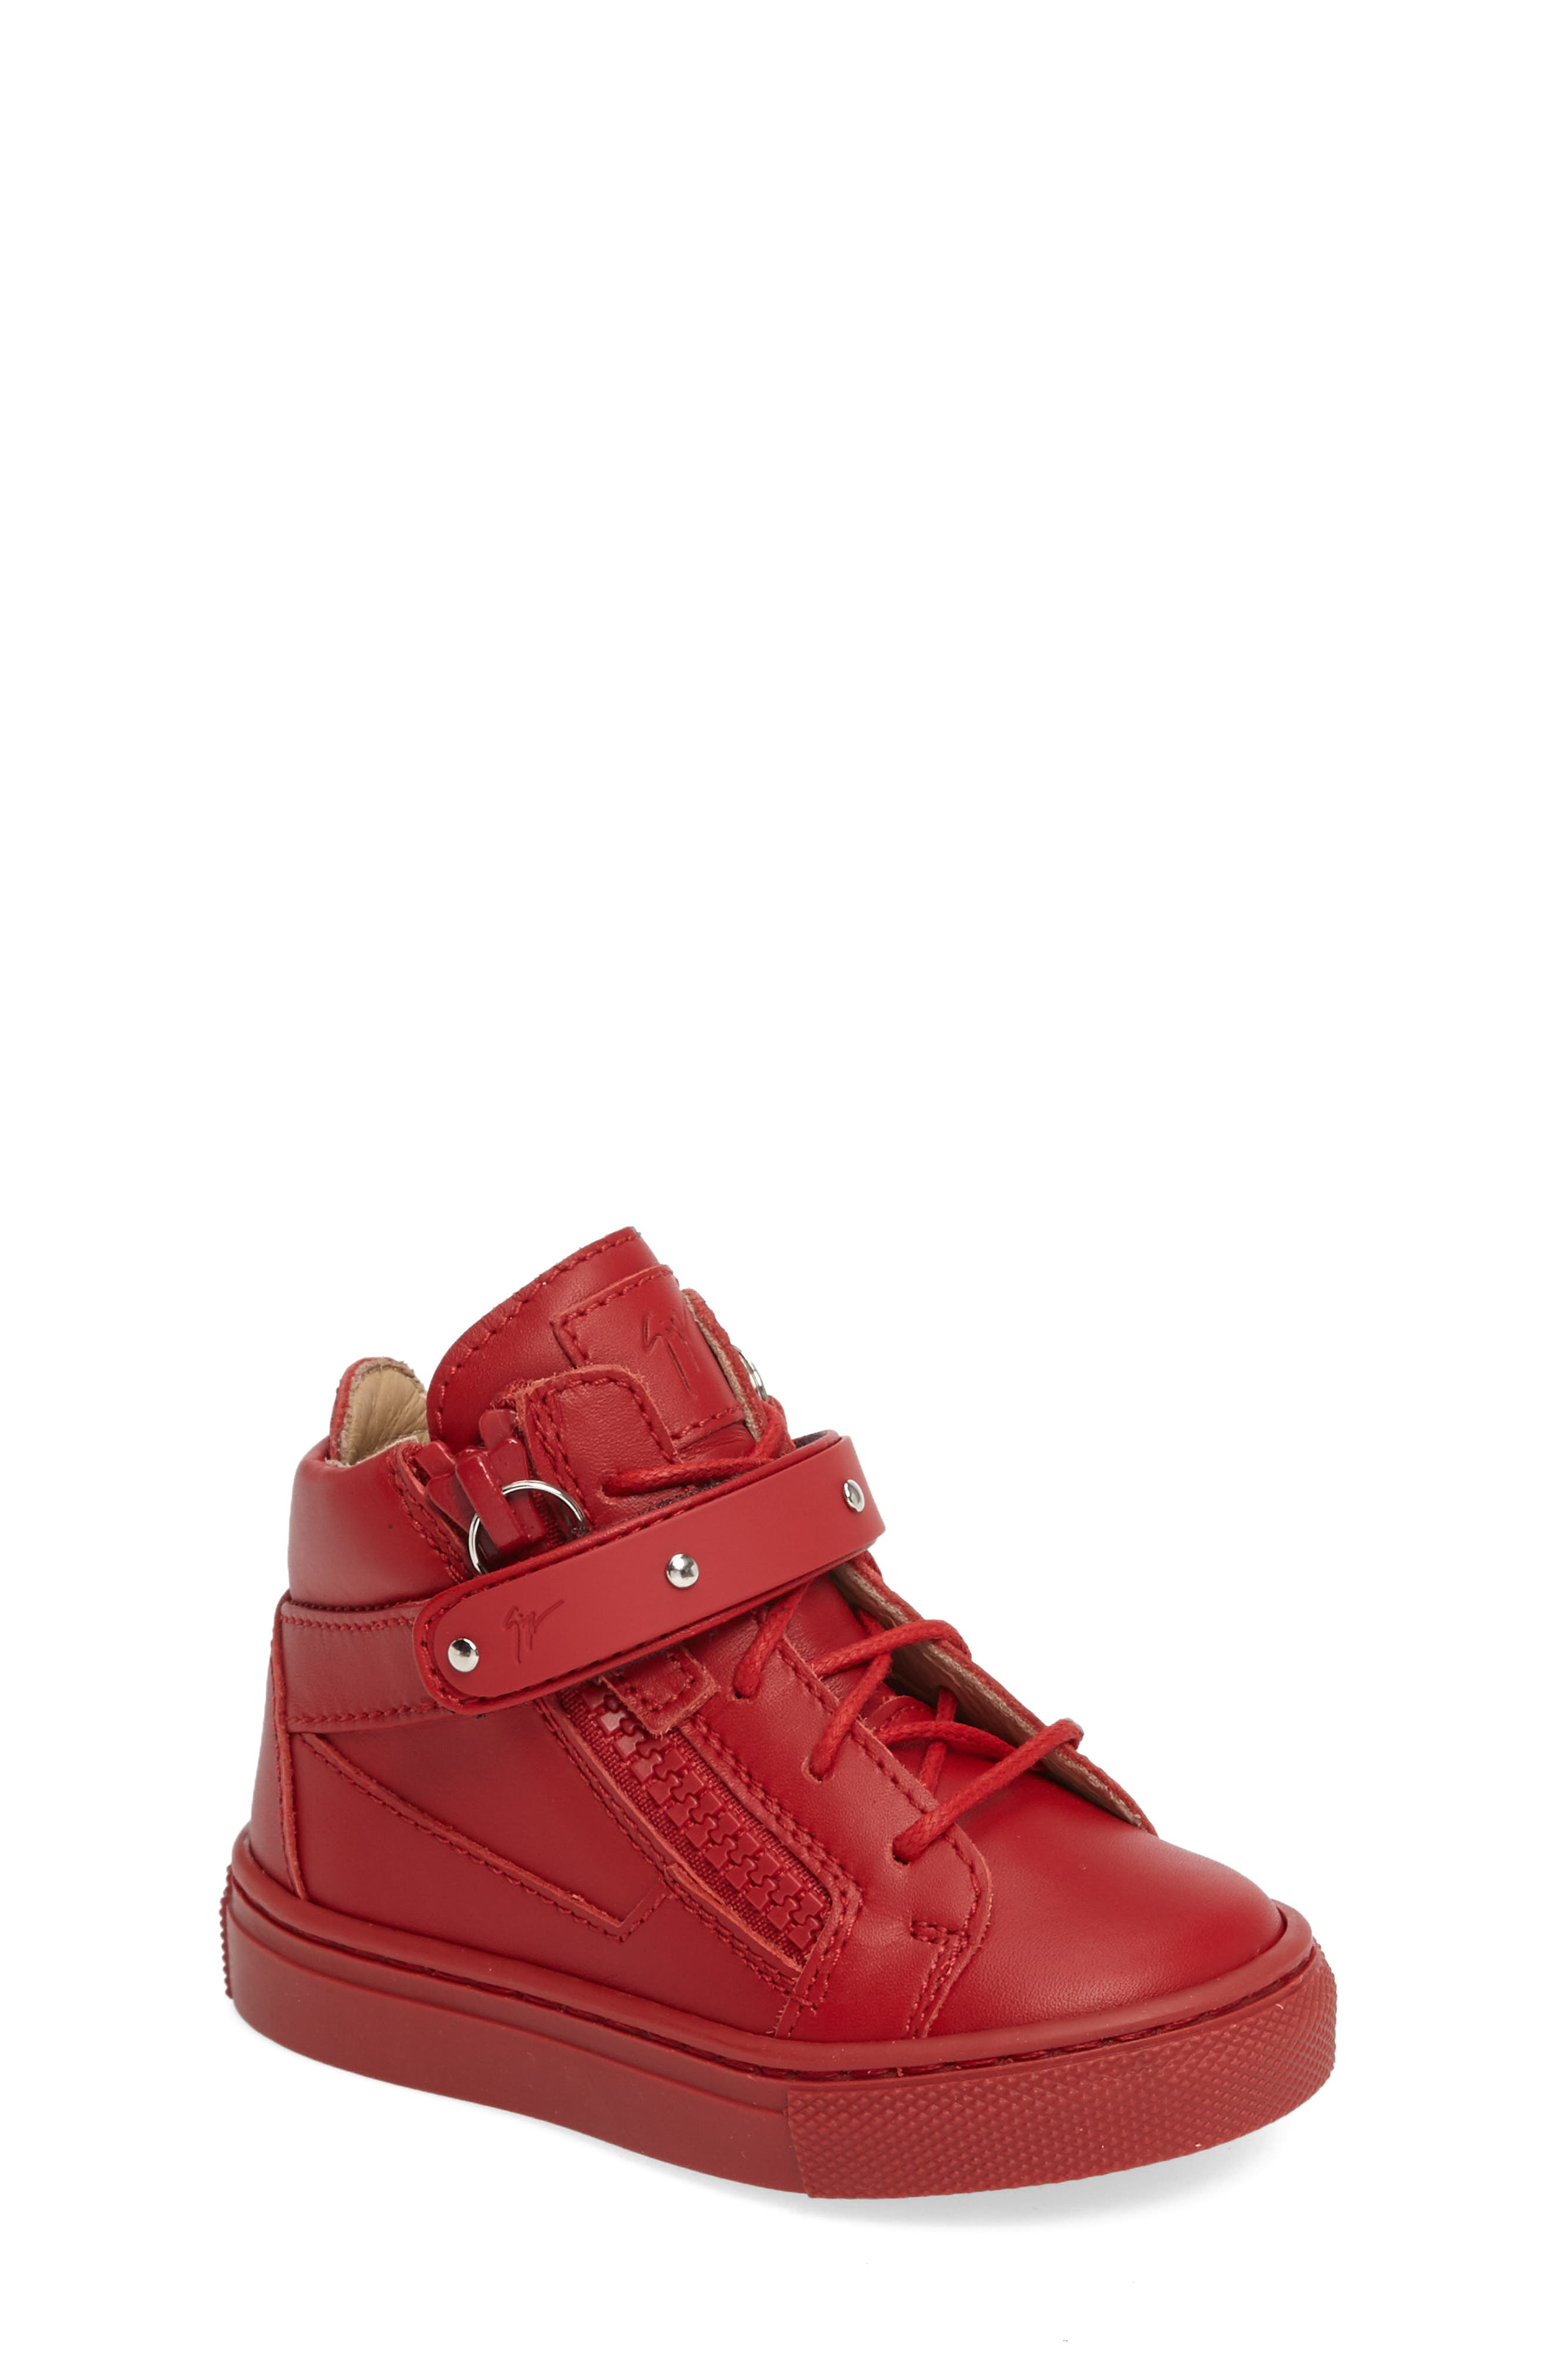 Taylor Junior High Top Sneaker,                             Main thumbnail 1, color,                             Red Leather